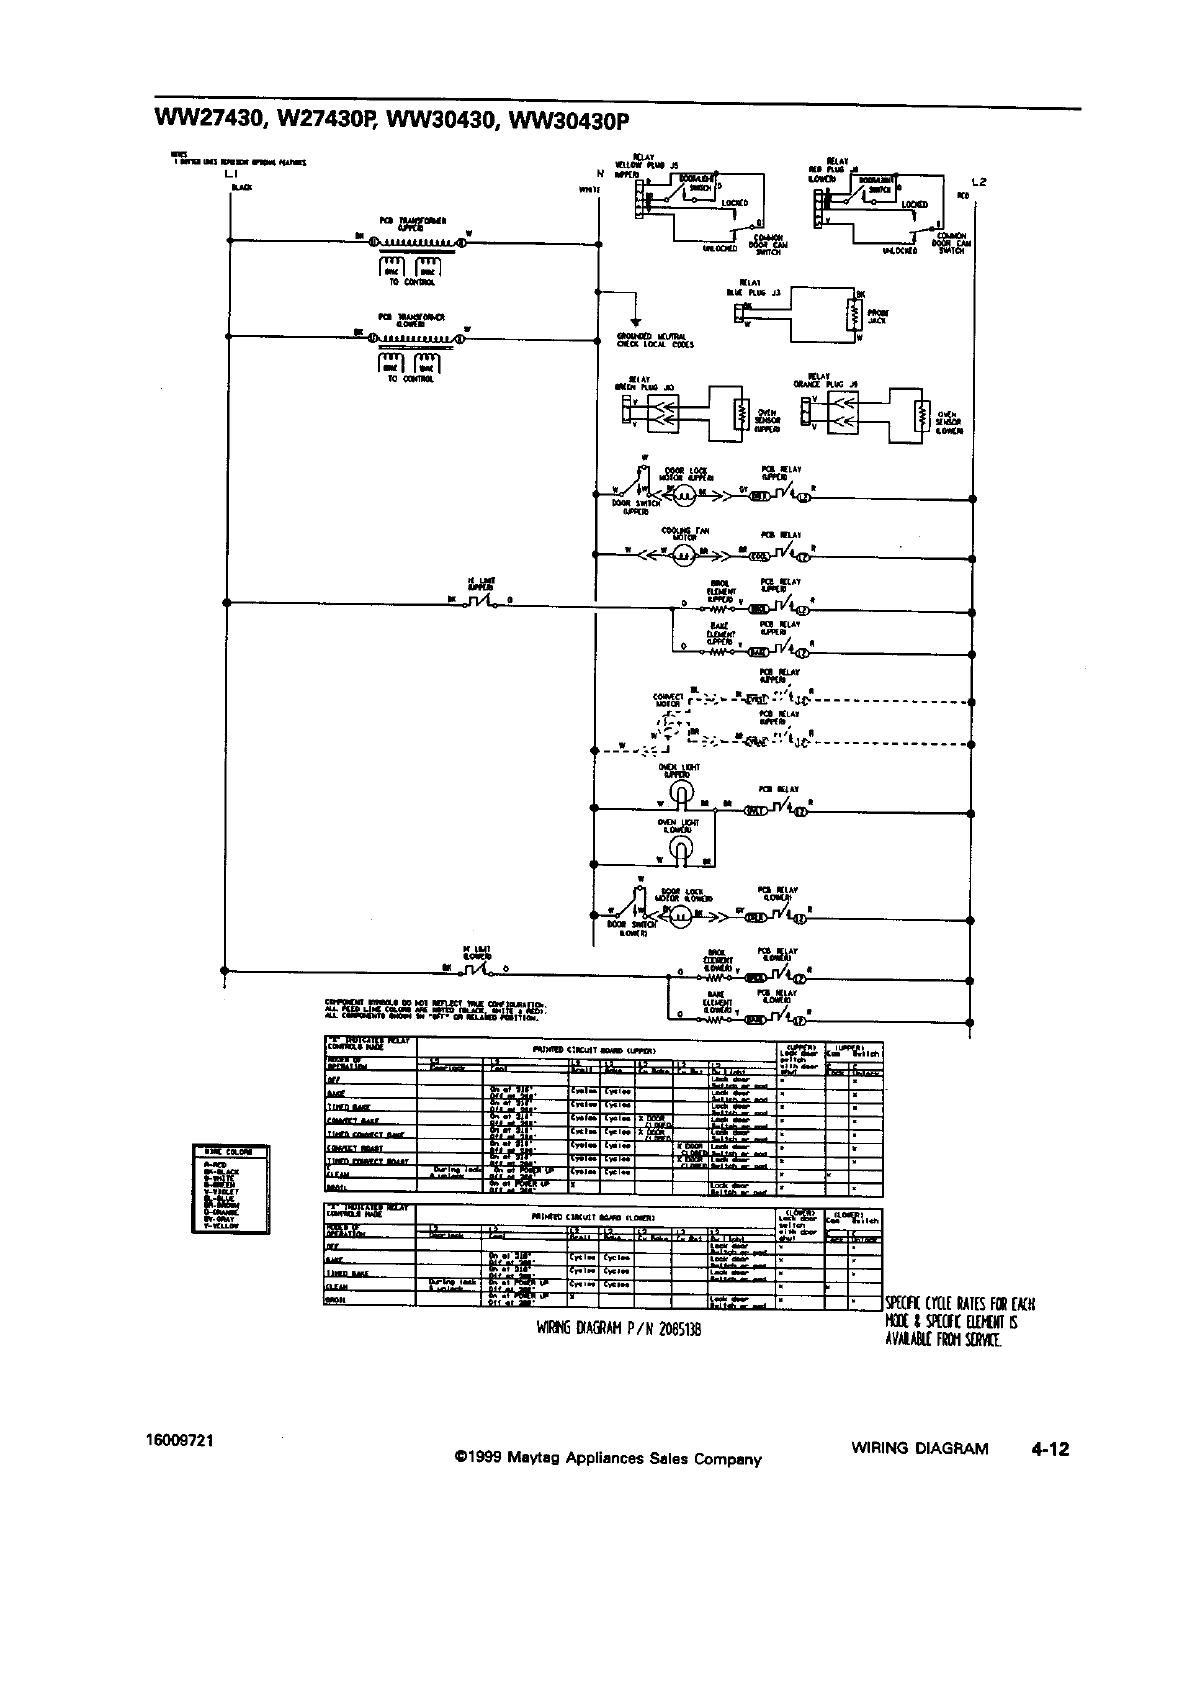 52b2f415 78fa 4259 88c0 be210120d02a bg2c page 44 of jenn air oven jjw8527 user guide manualsonline com Basic Electrical Wiring Diagrams at virtualis.co